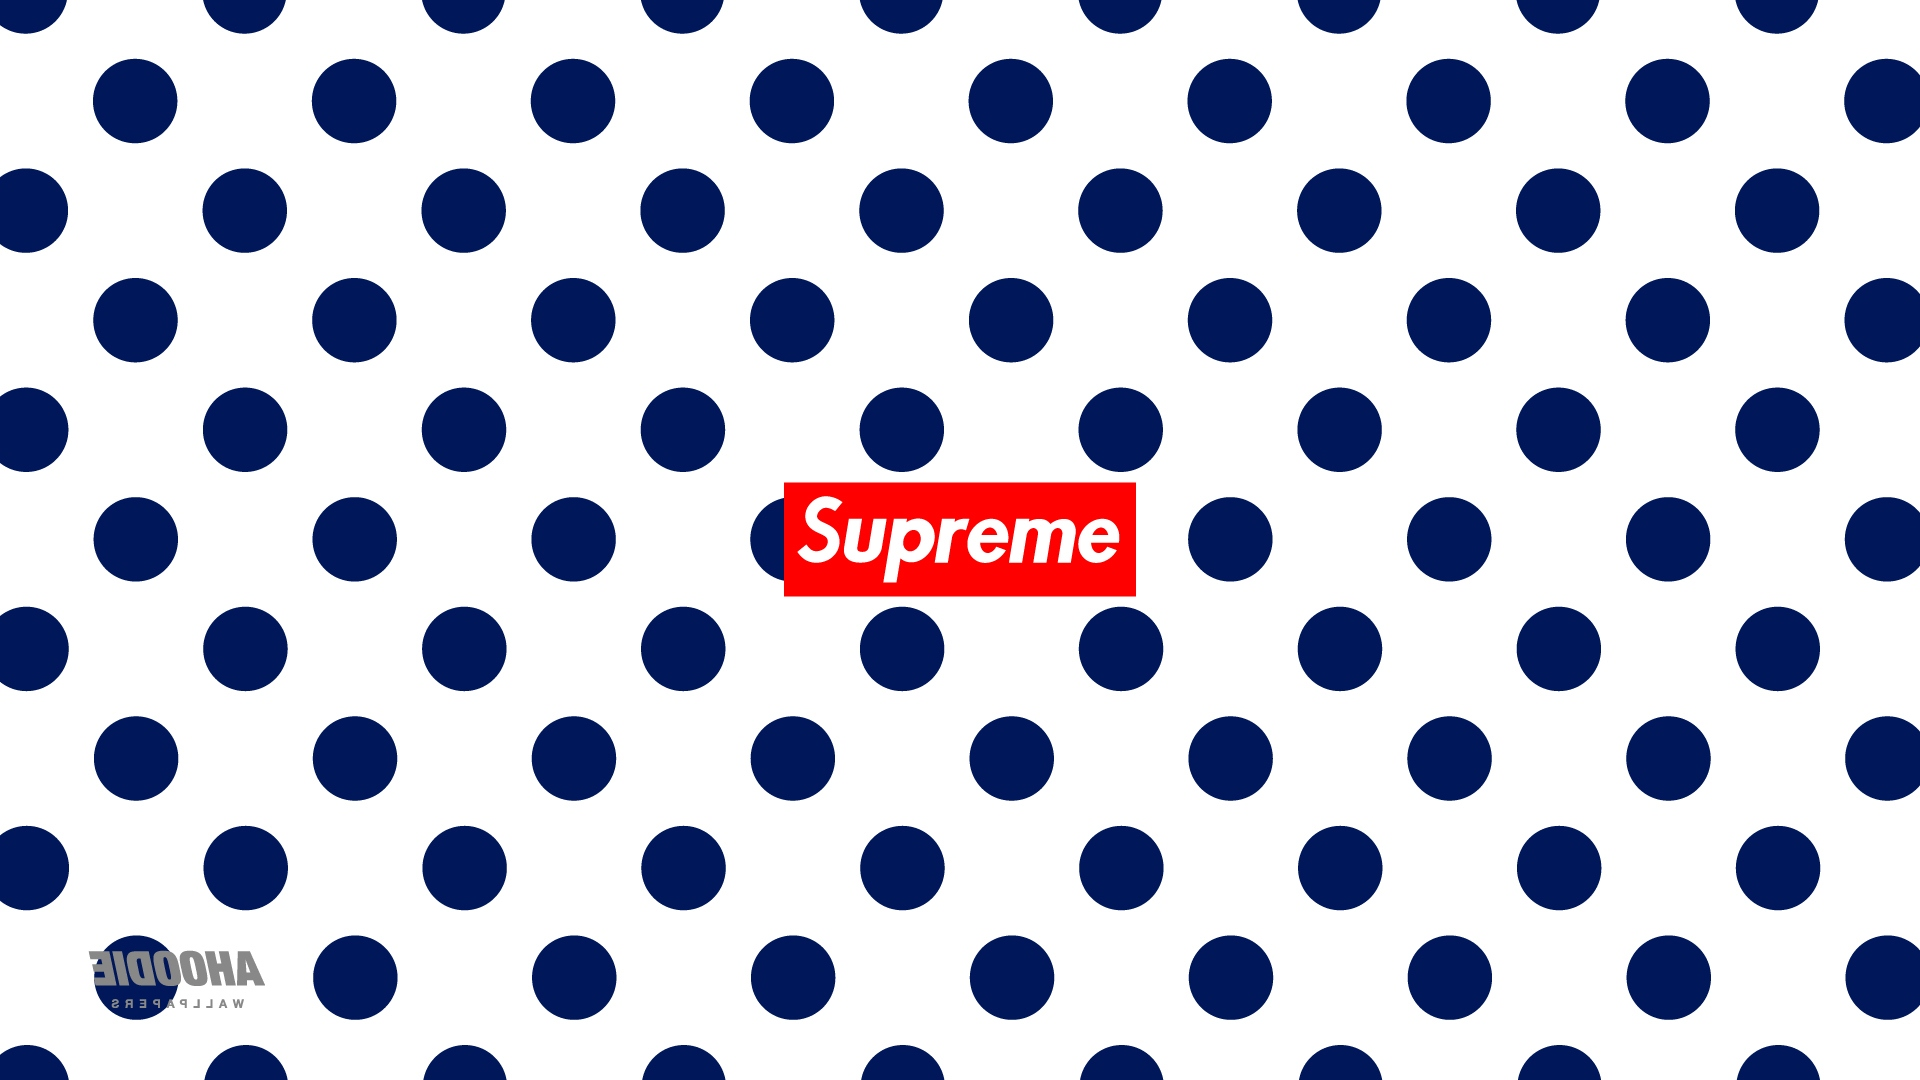 Supreme Wallpaper Tumblr Supreme wallpaper tumblr 1920x1080